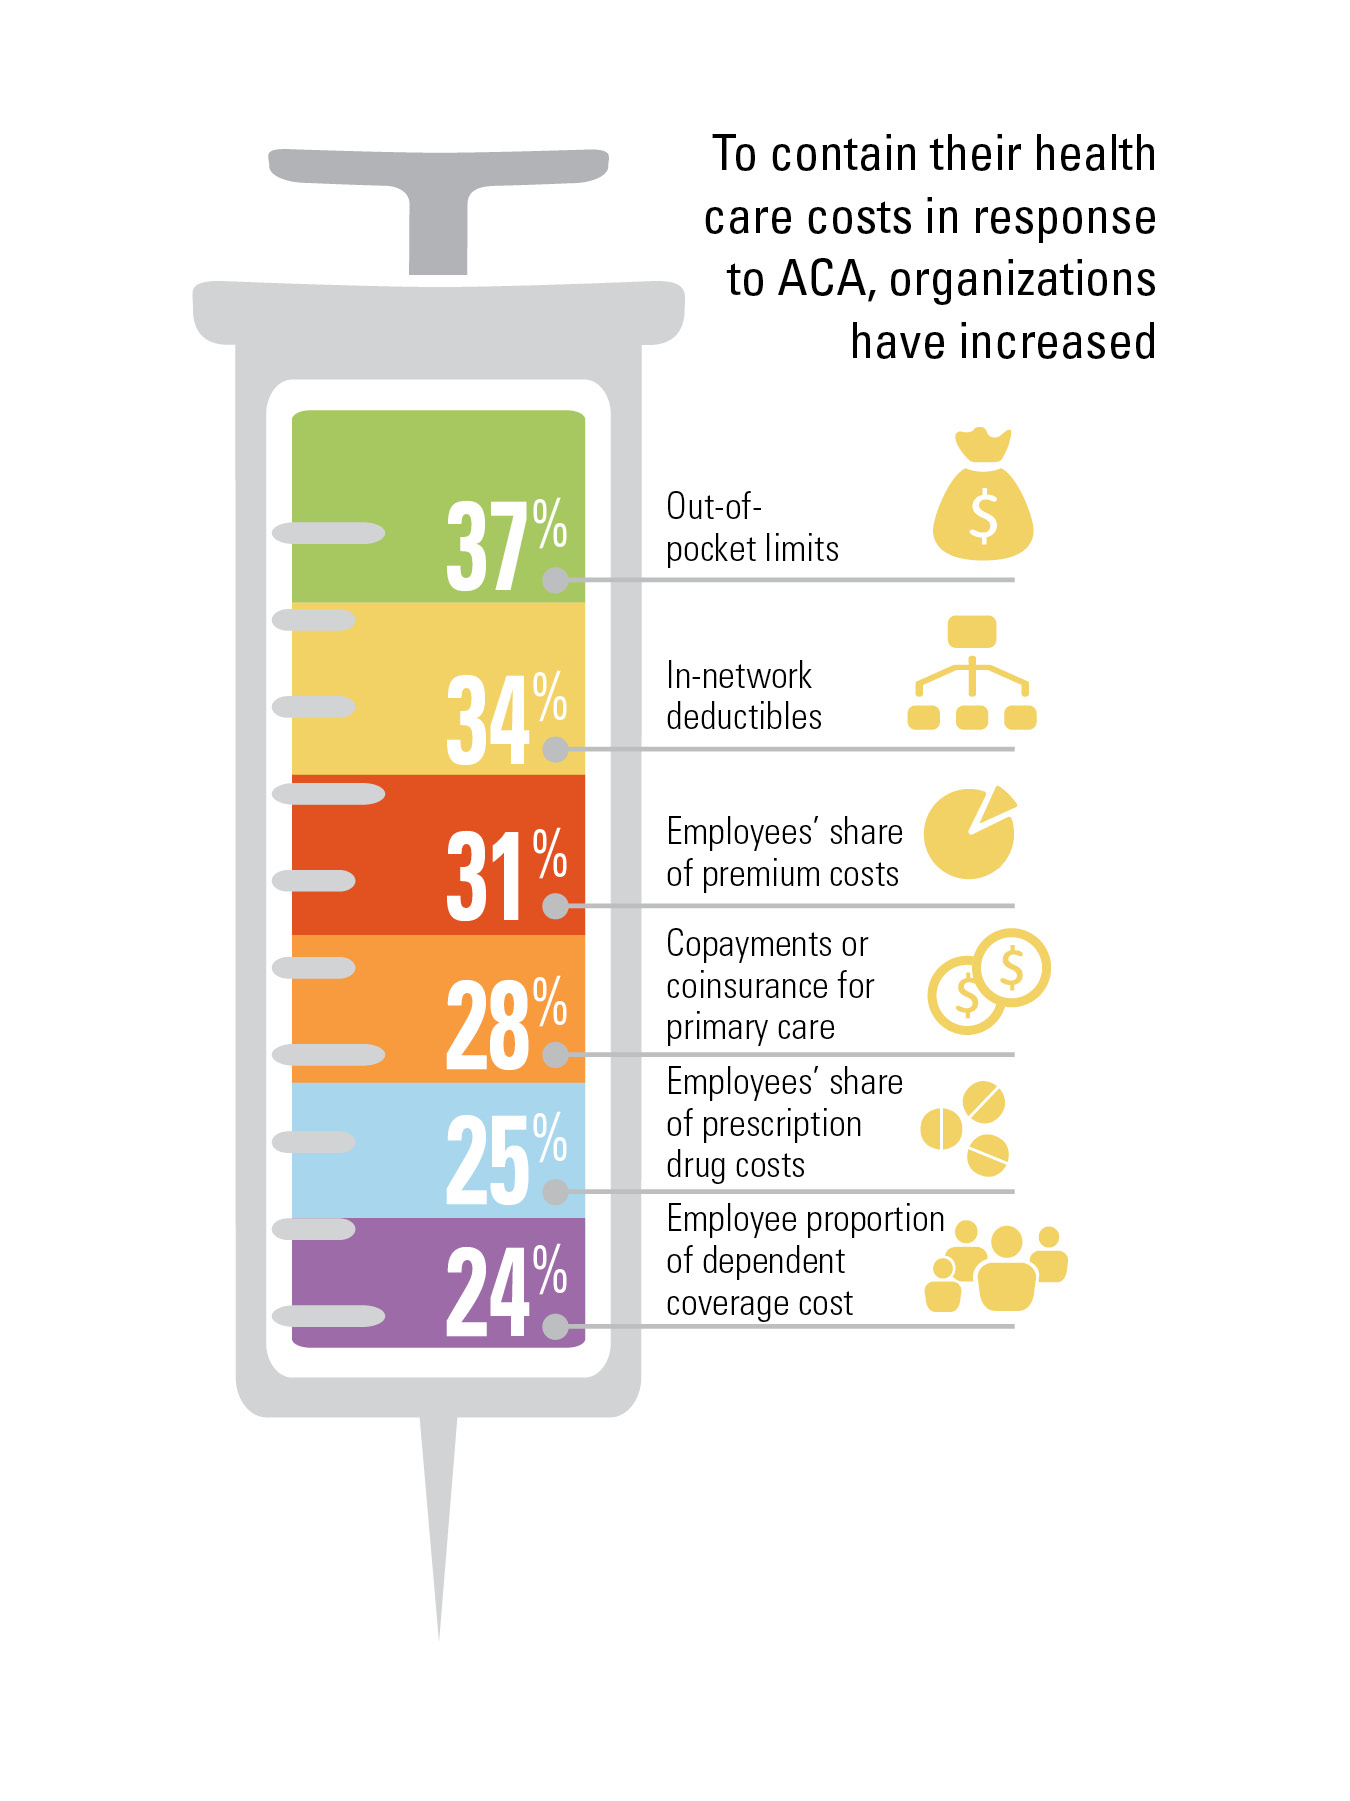 ACA Cost Increases Hitting Employee Wallets